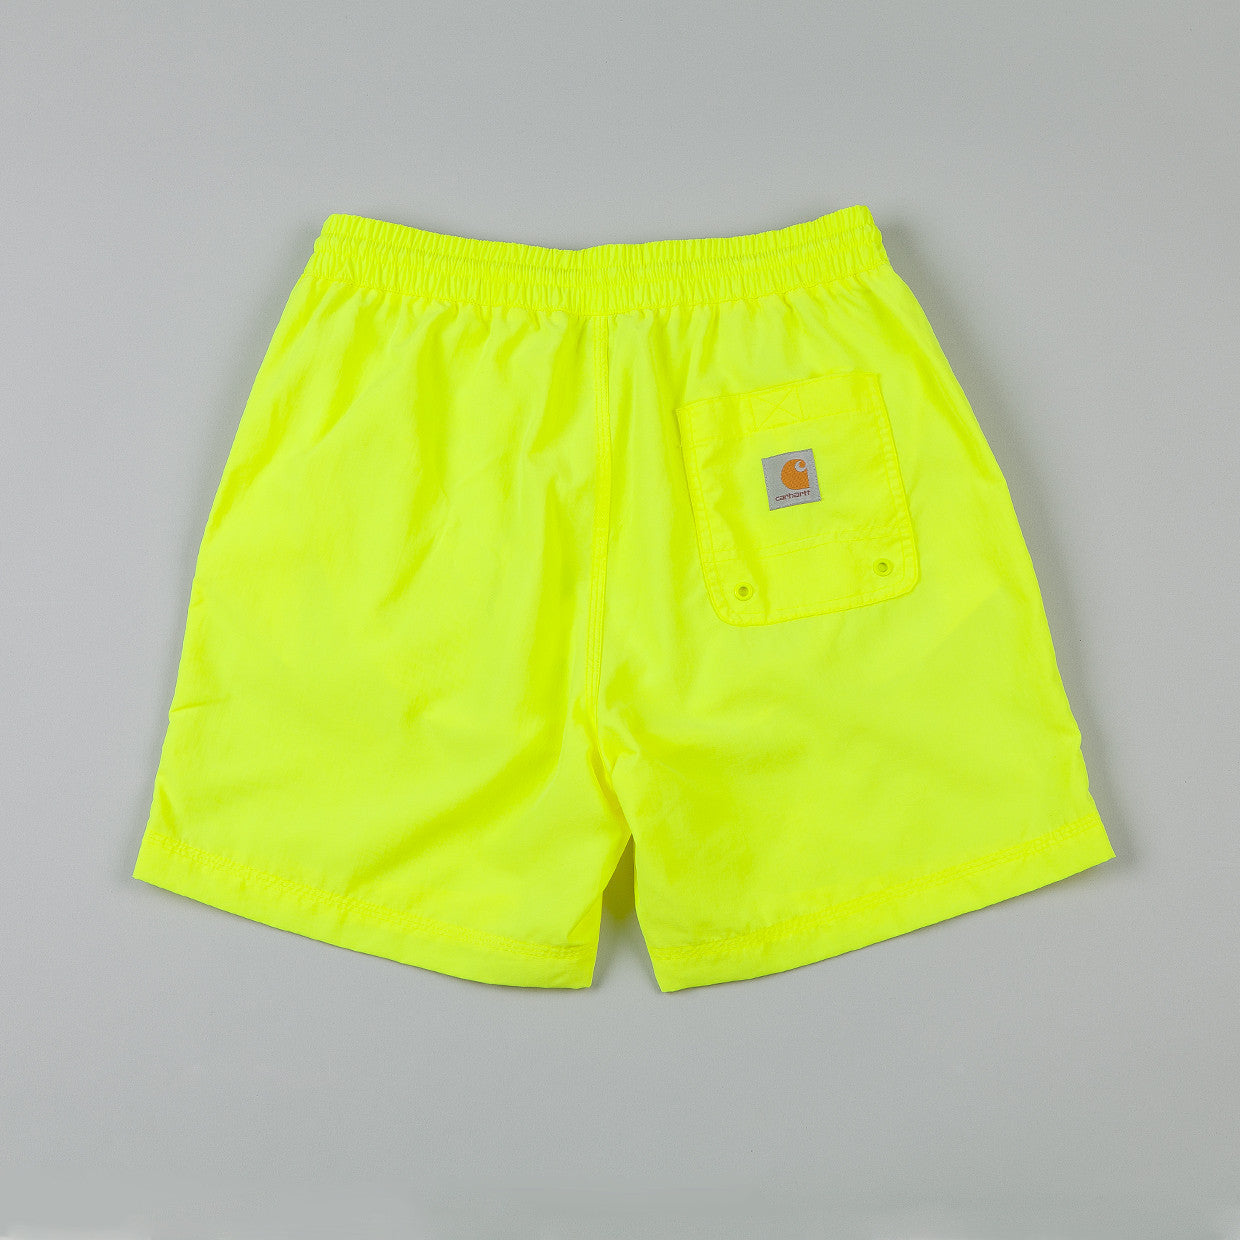 Carhartt Drift Trunk Yellow